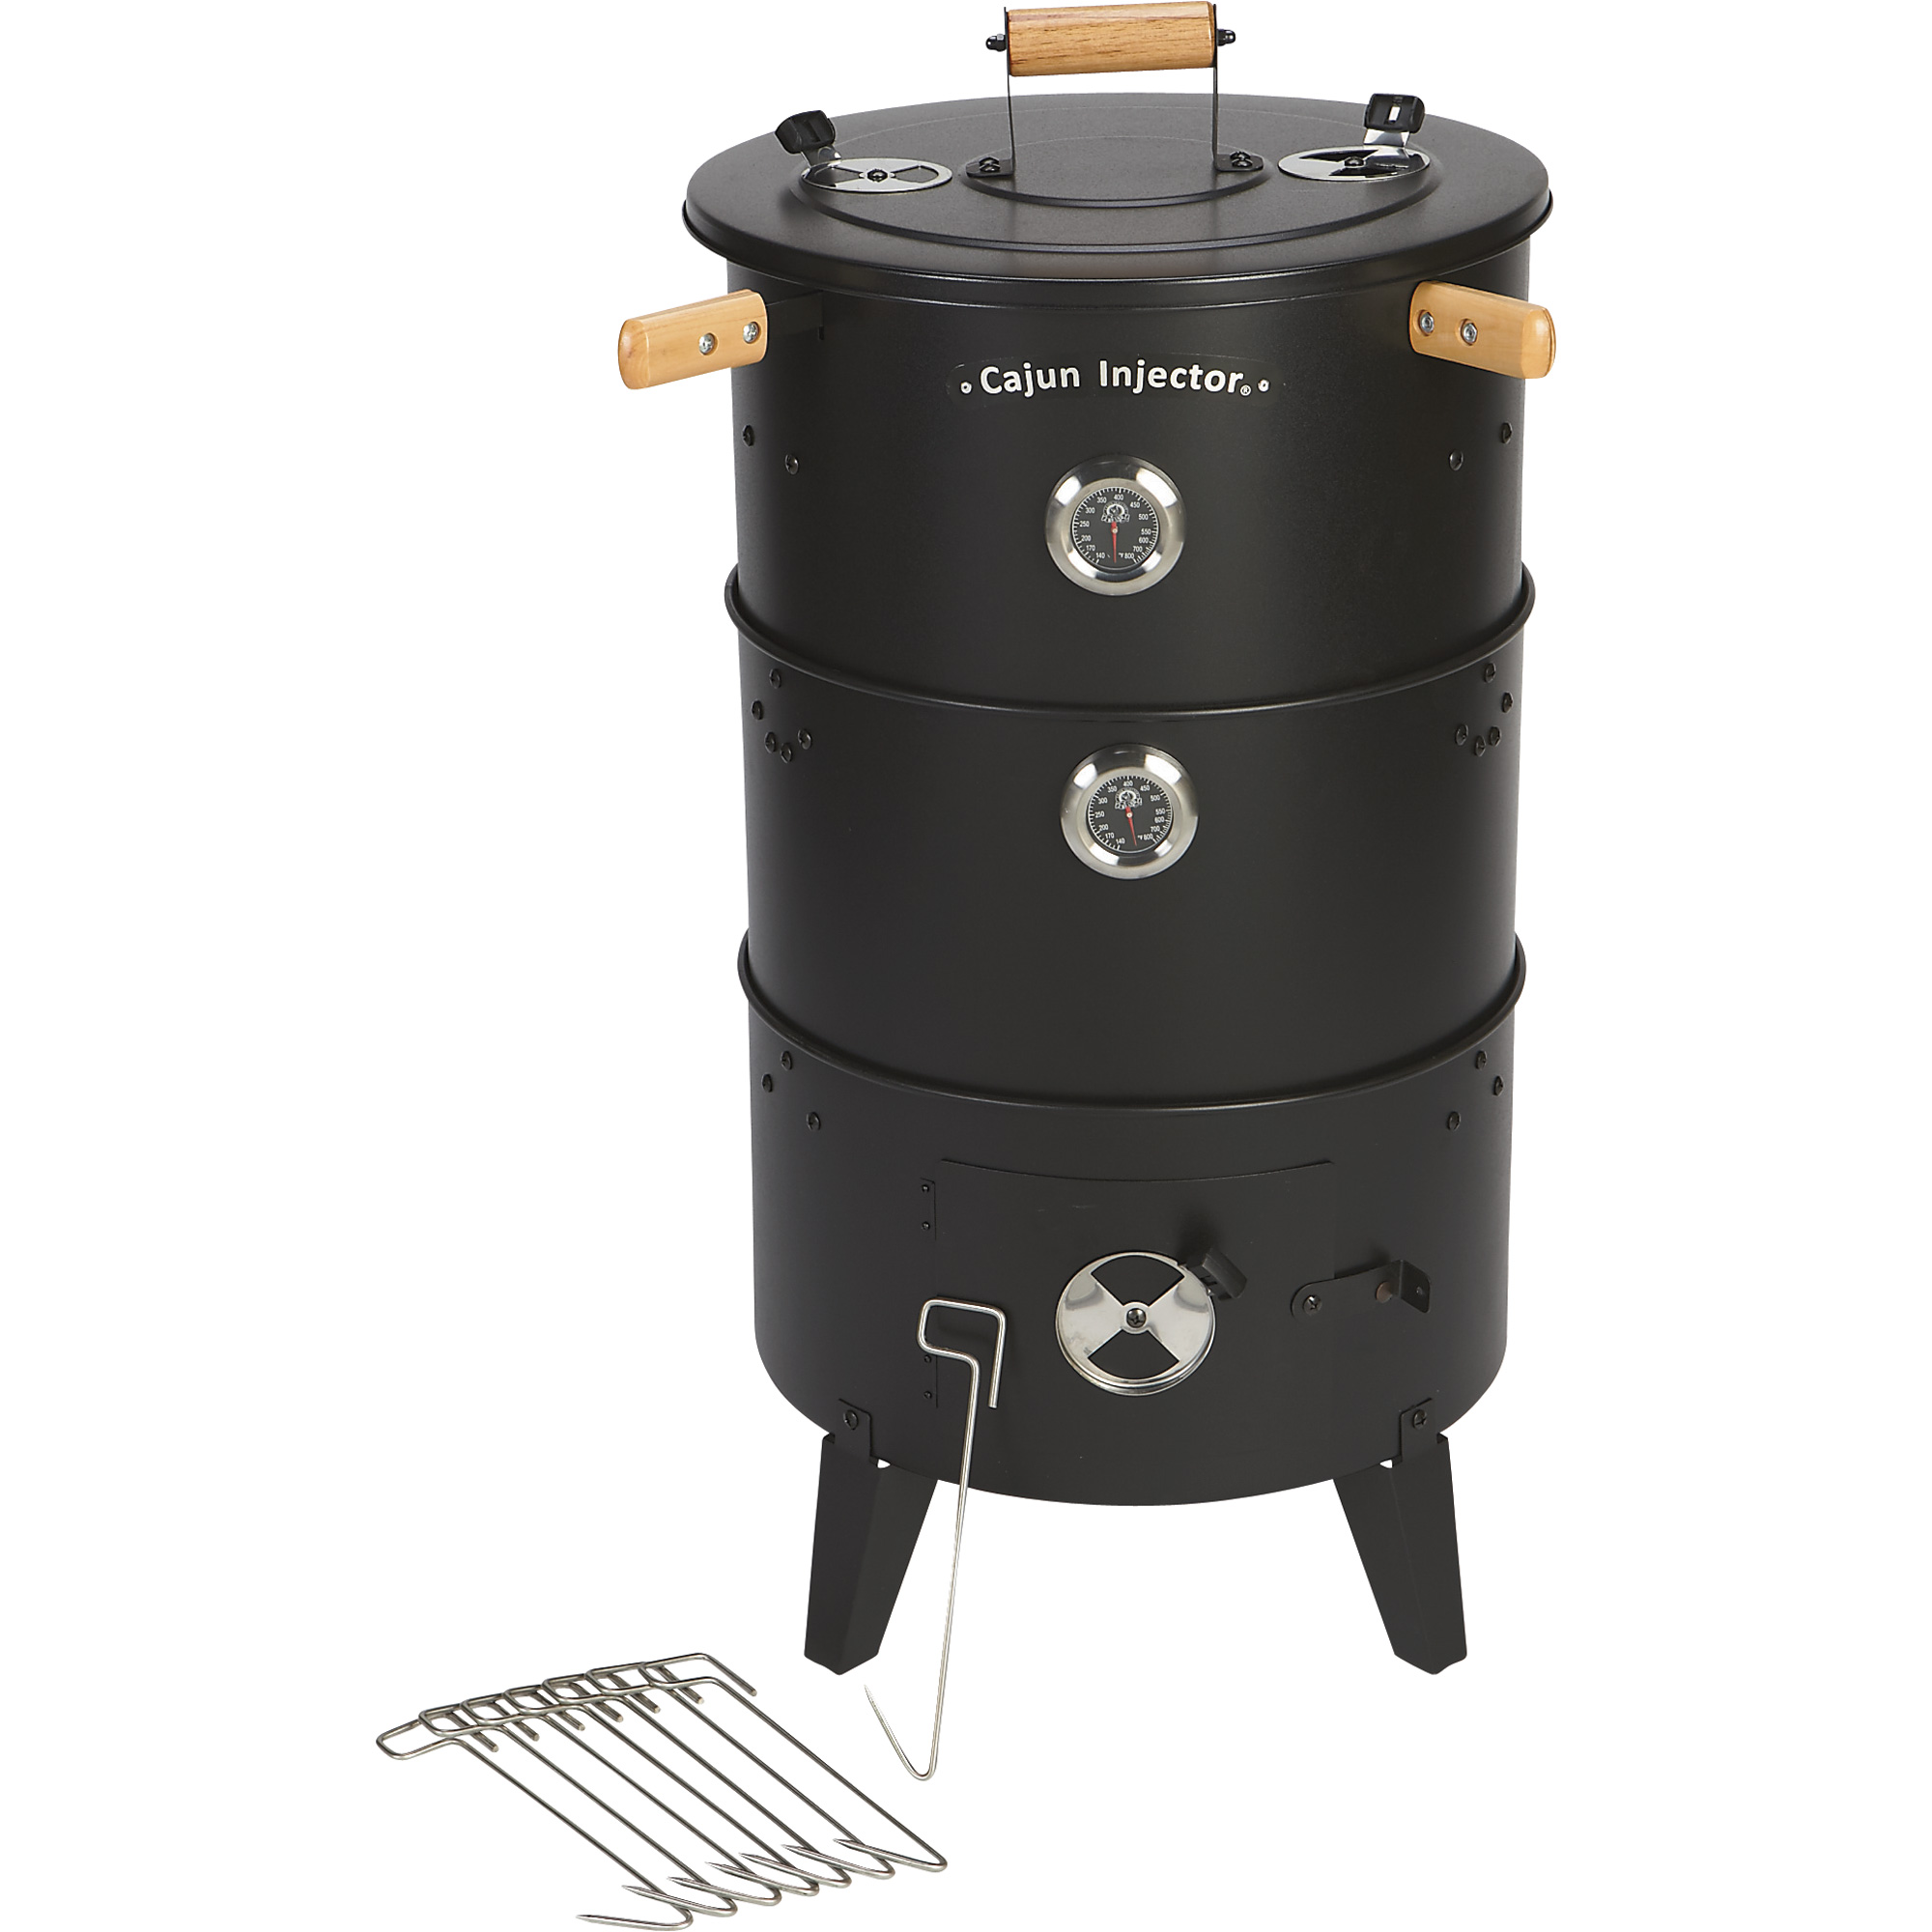 cajun injector charcoal chicken cooker smoker grill multi level 25in l x 21in w x 37in h. Black Bedroom Furniture Sets. Home Design Ideas